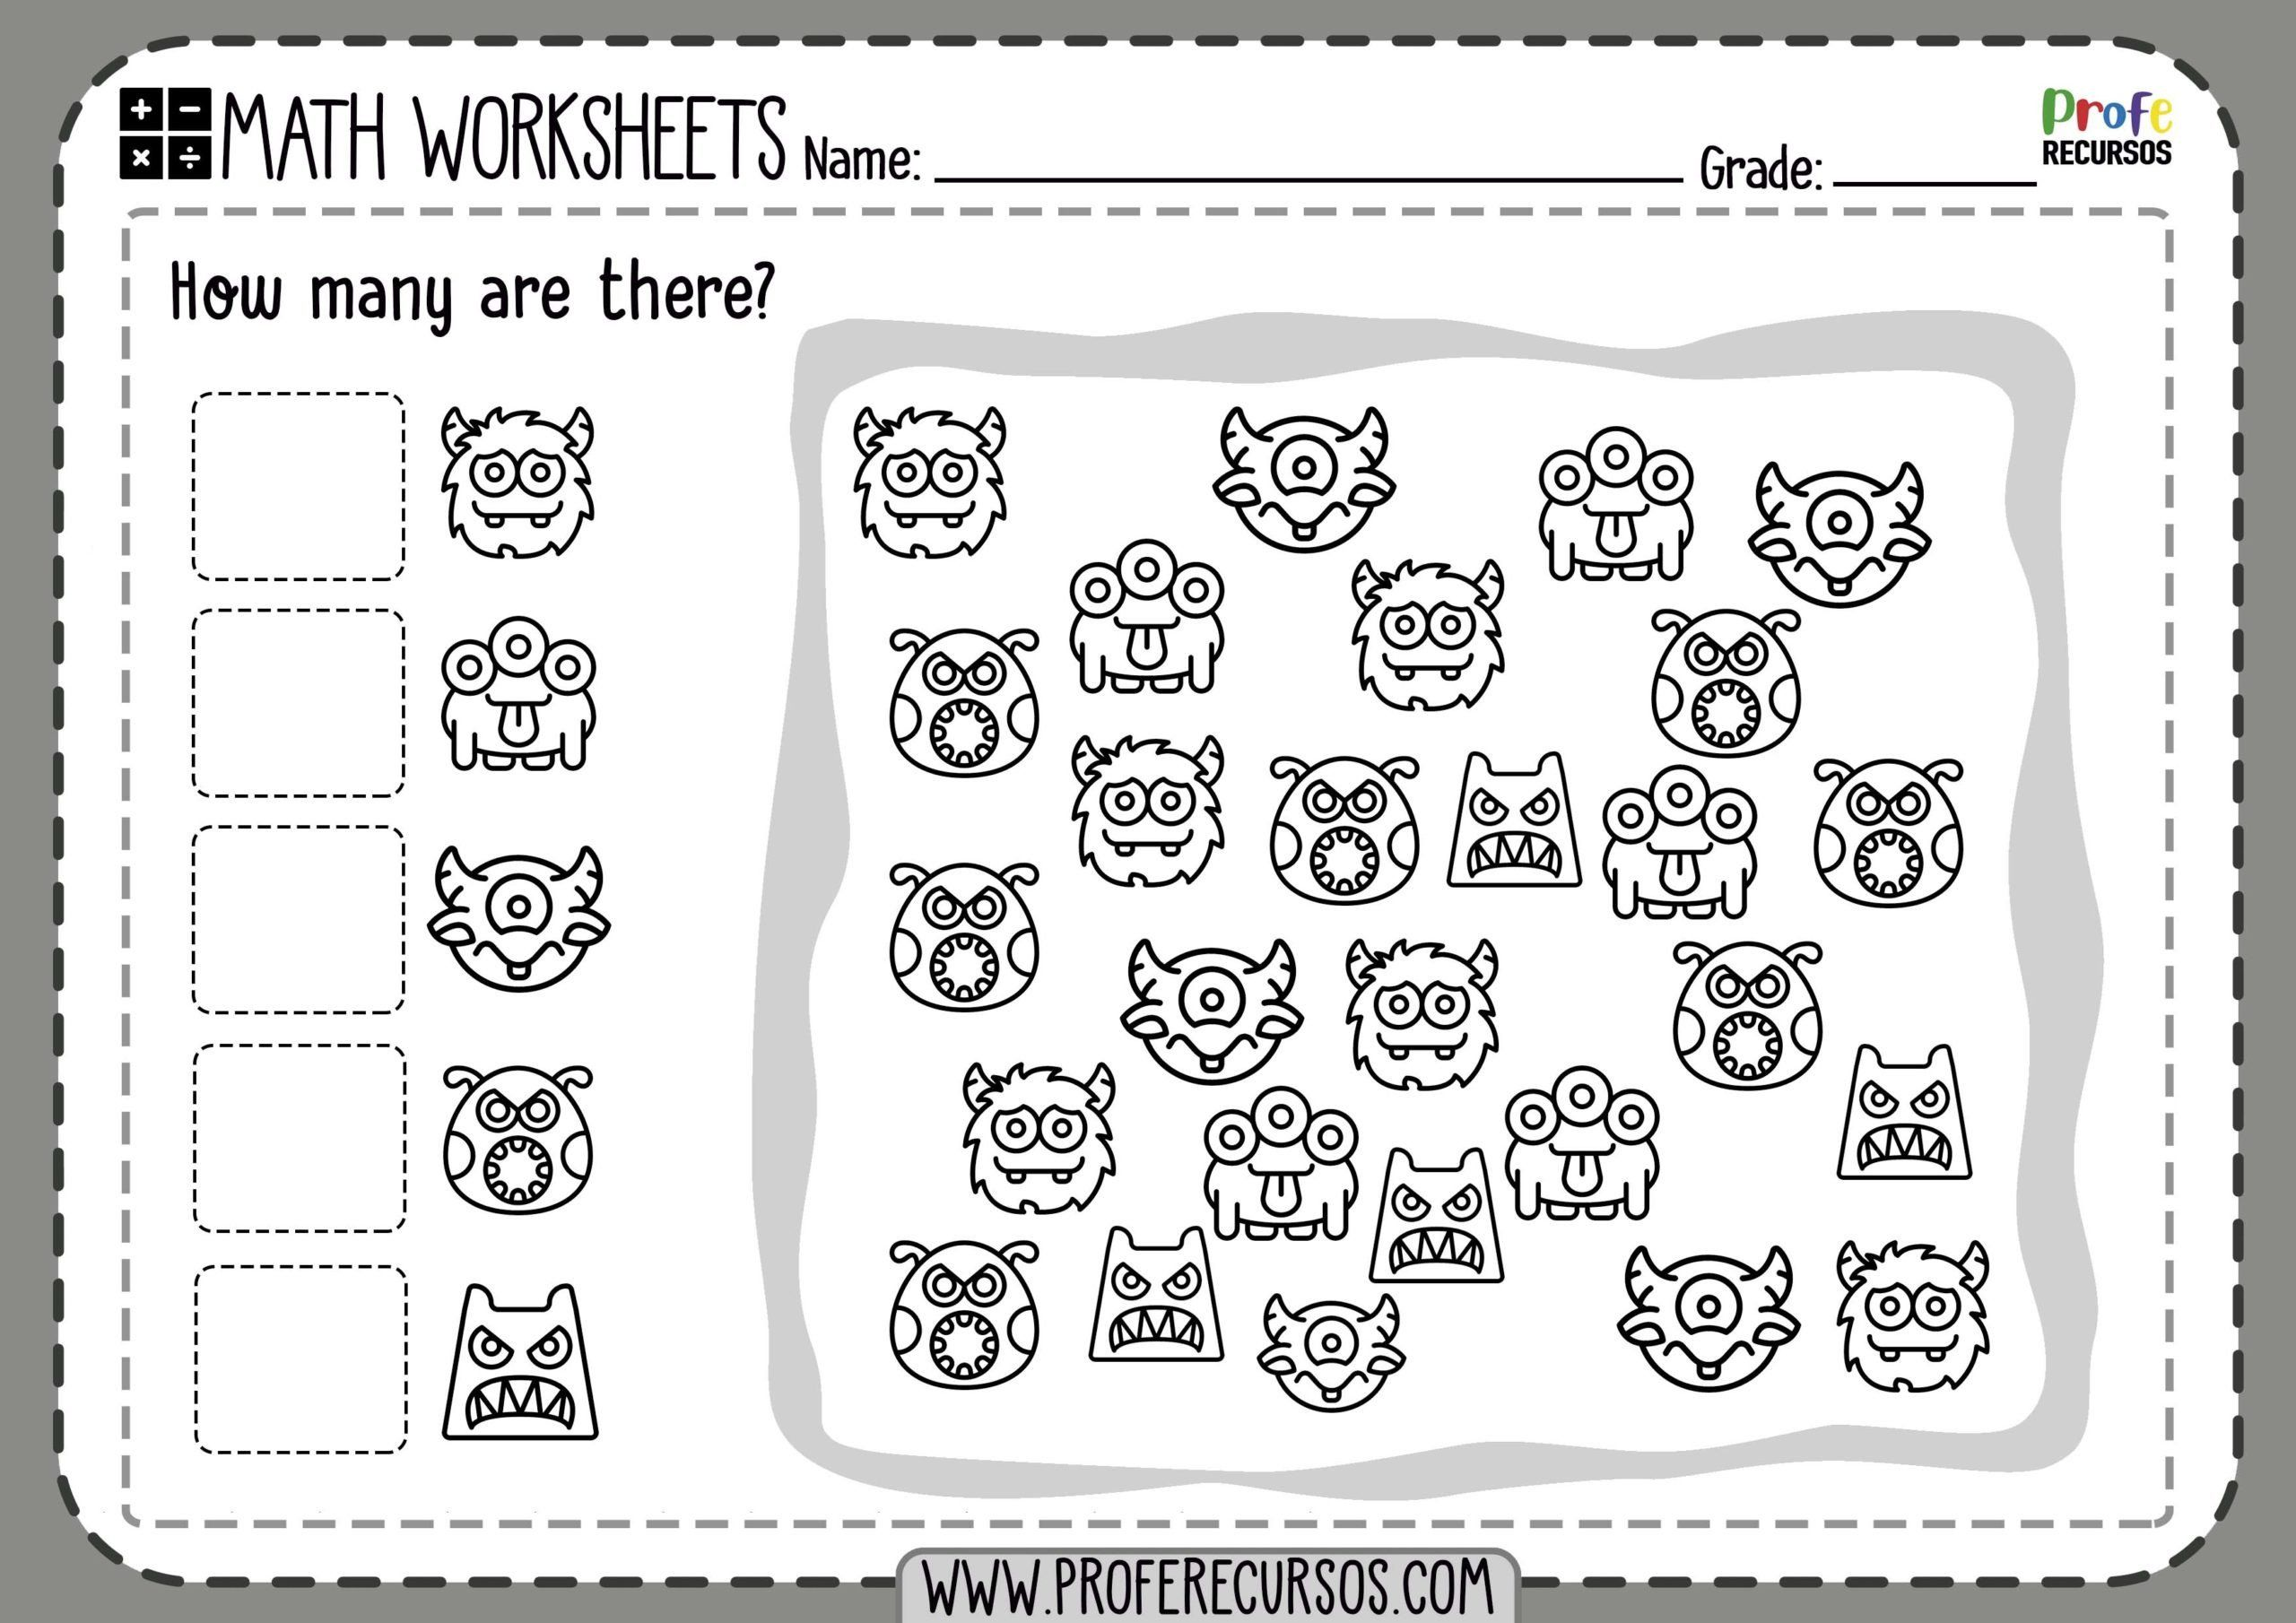 Adding Worksheets For Kindergarten Free Printable Counting